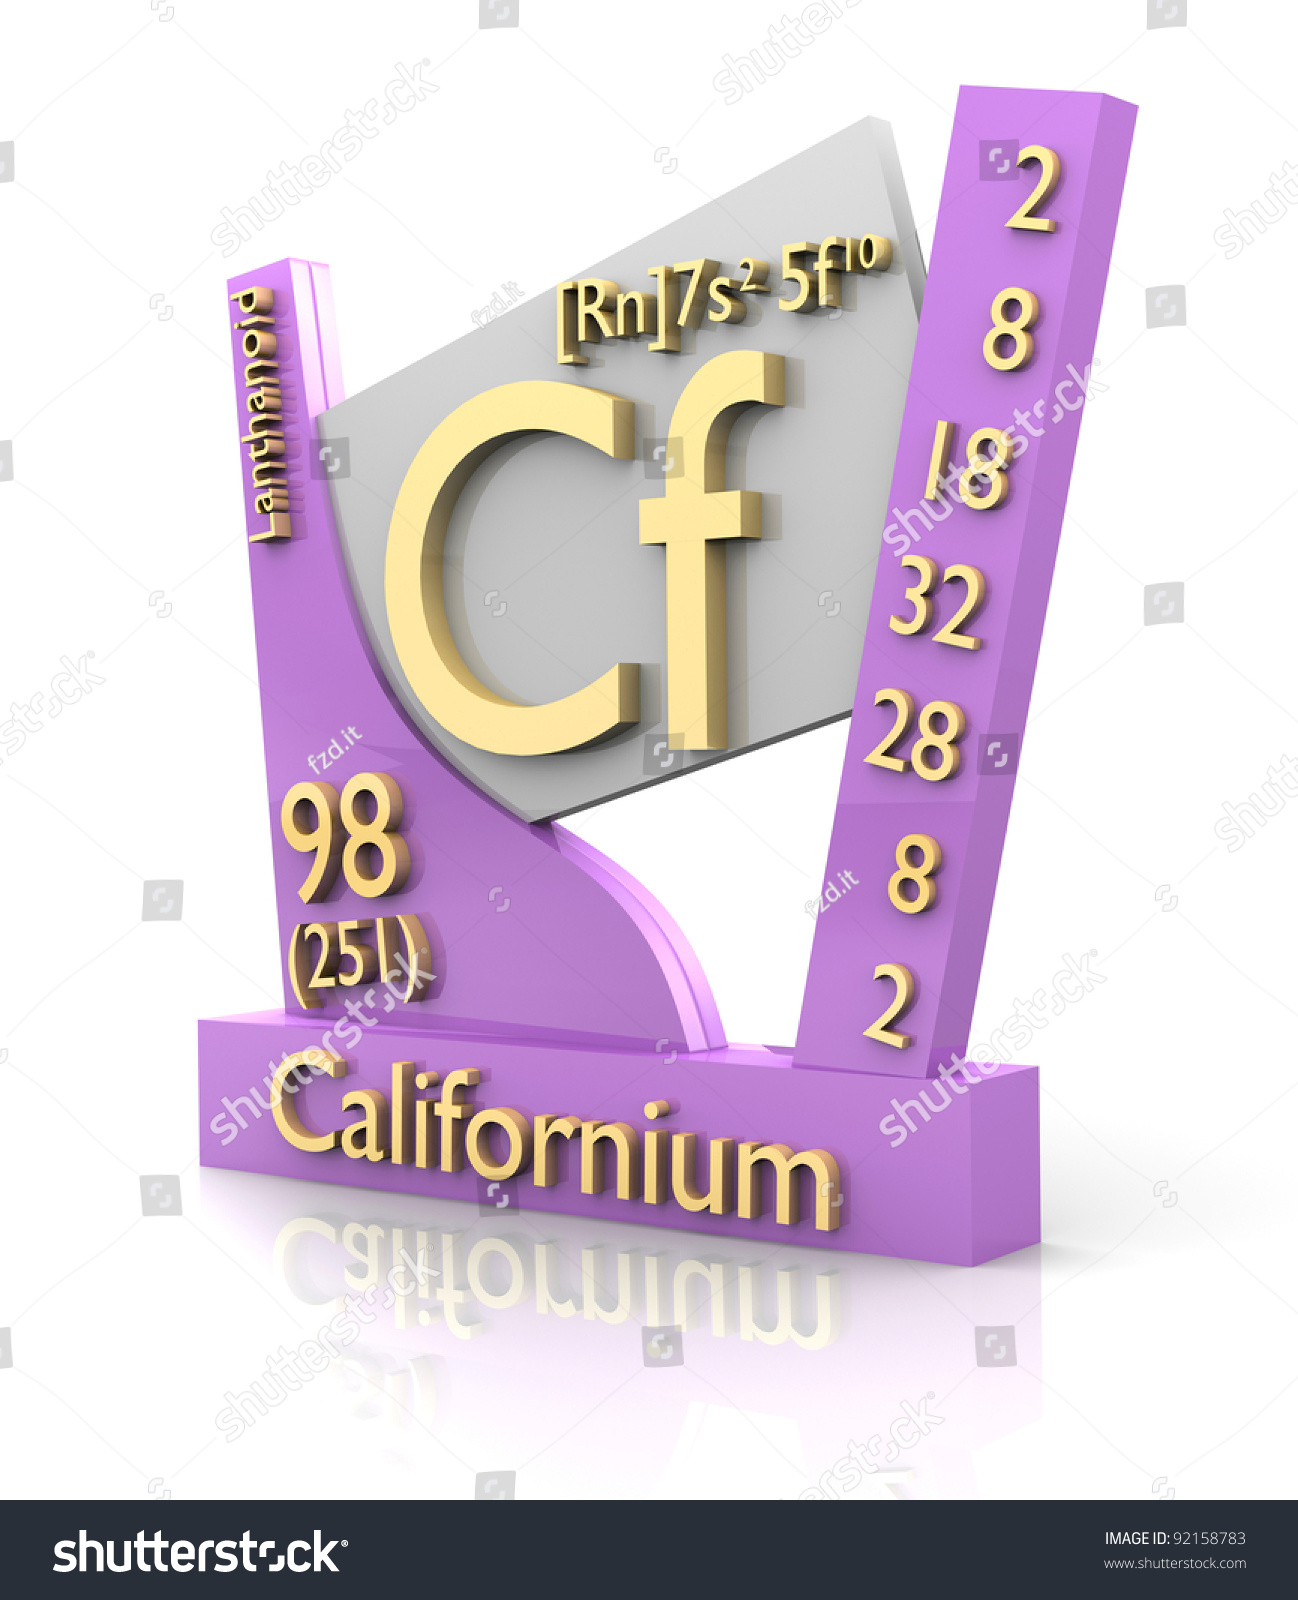 Californium form periodic table elements 3d stock illustration californium form periodic table of elements 3d made gamestrikefo Images